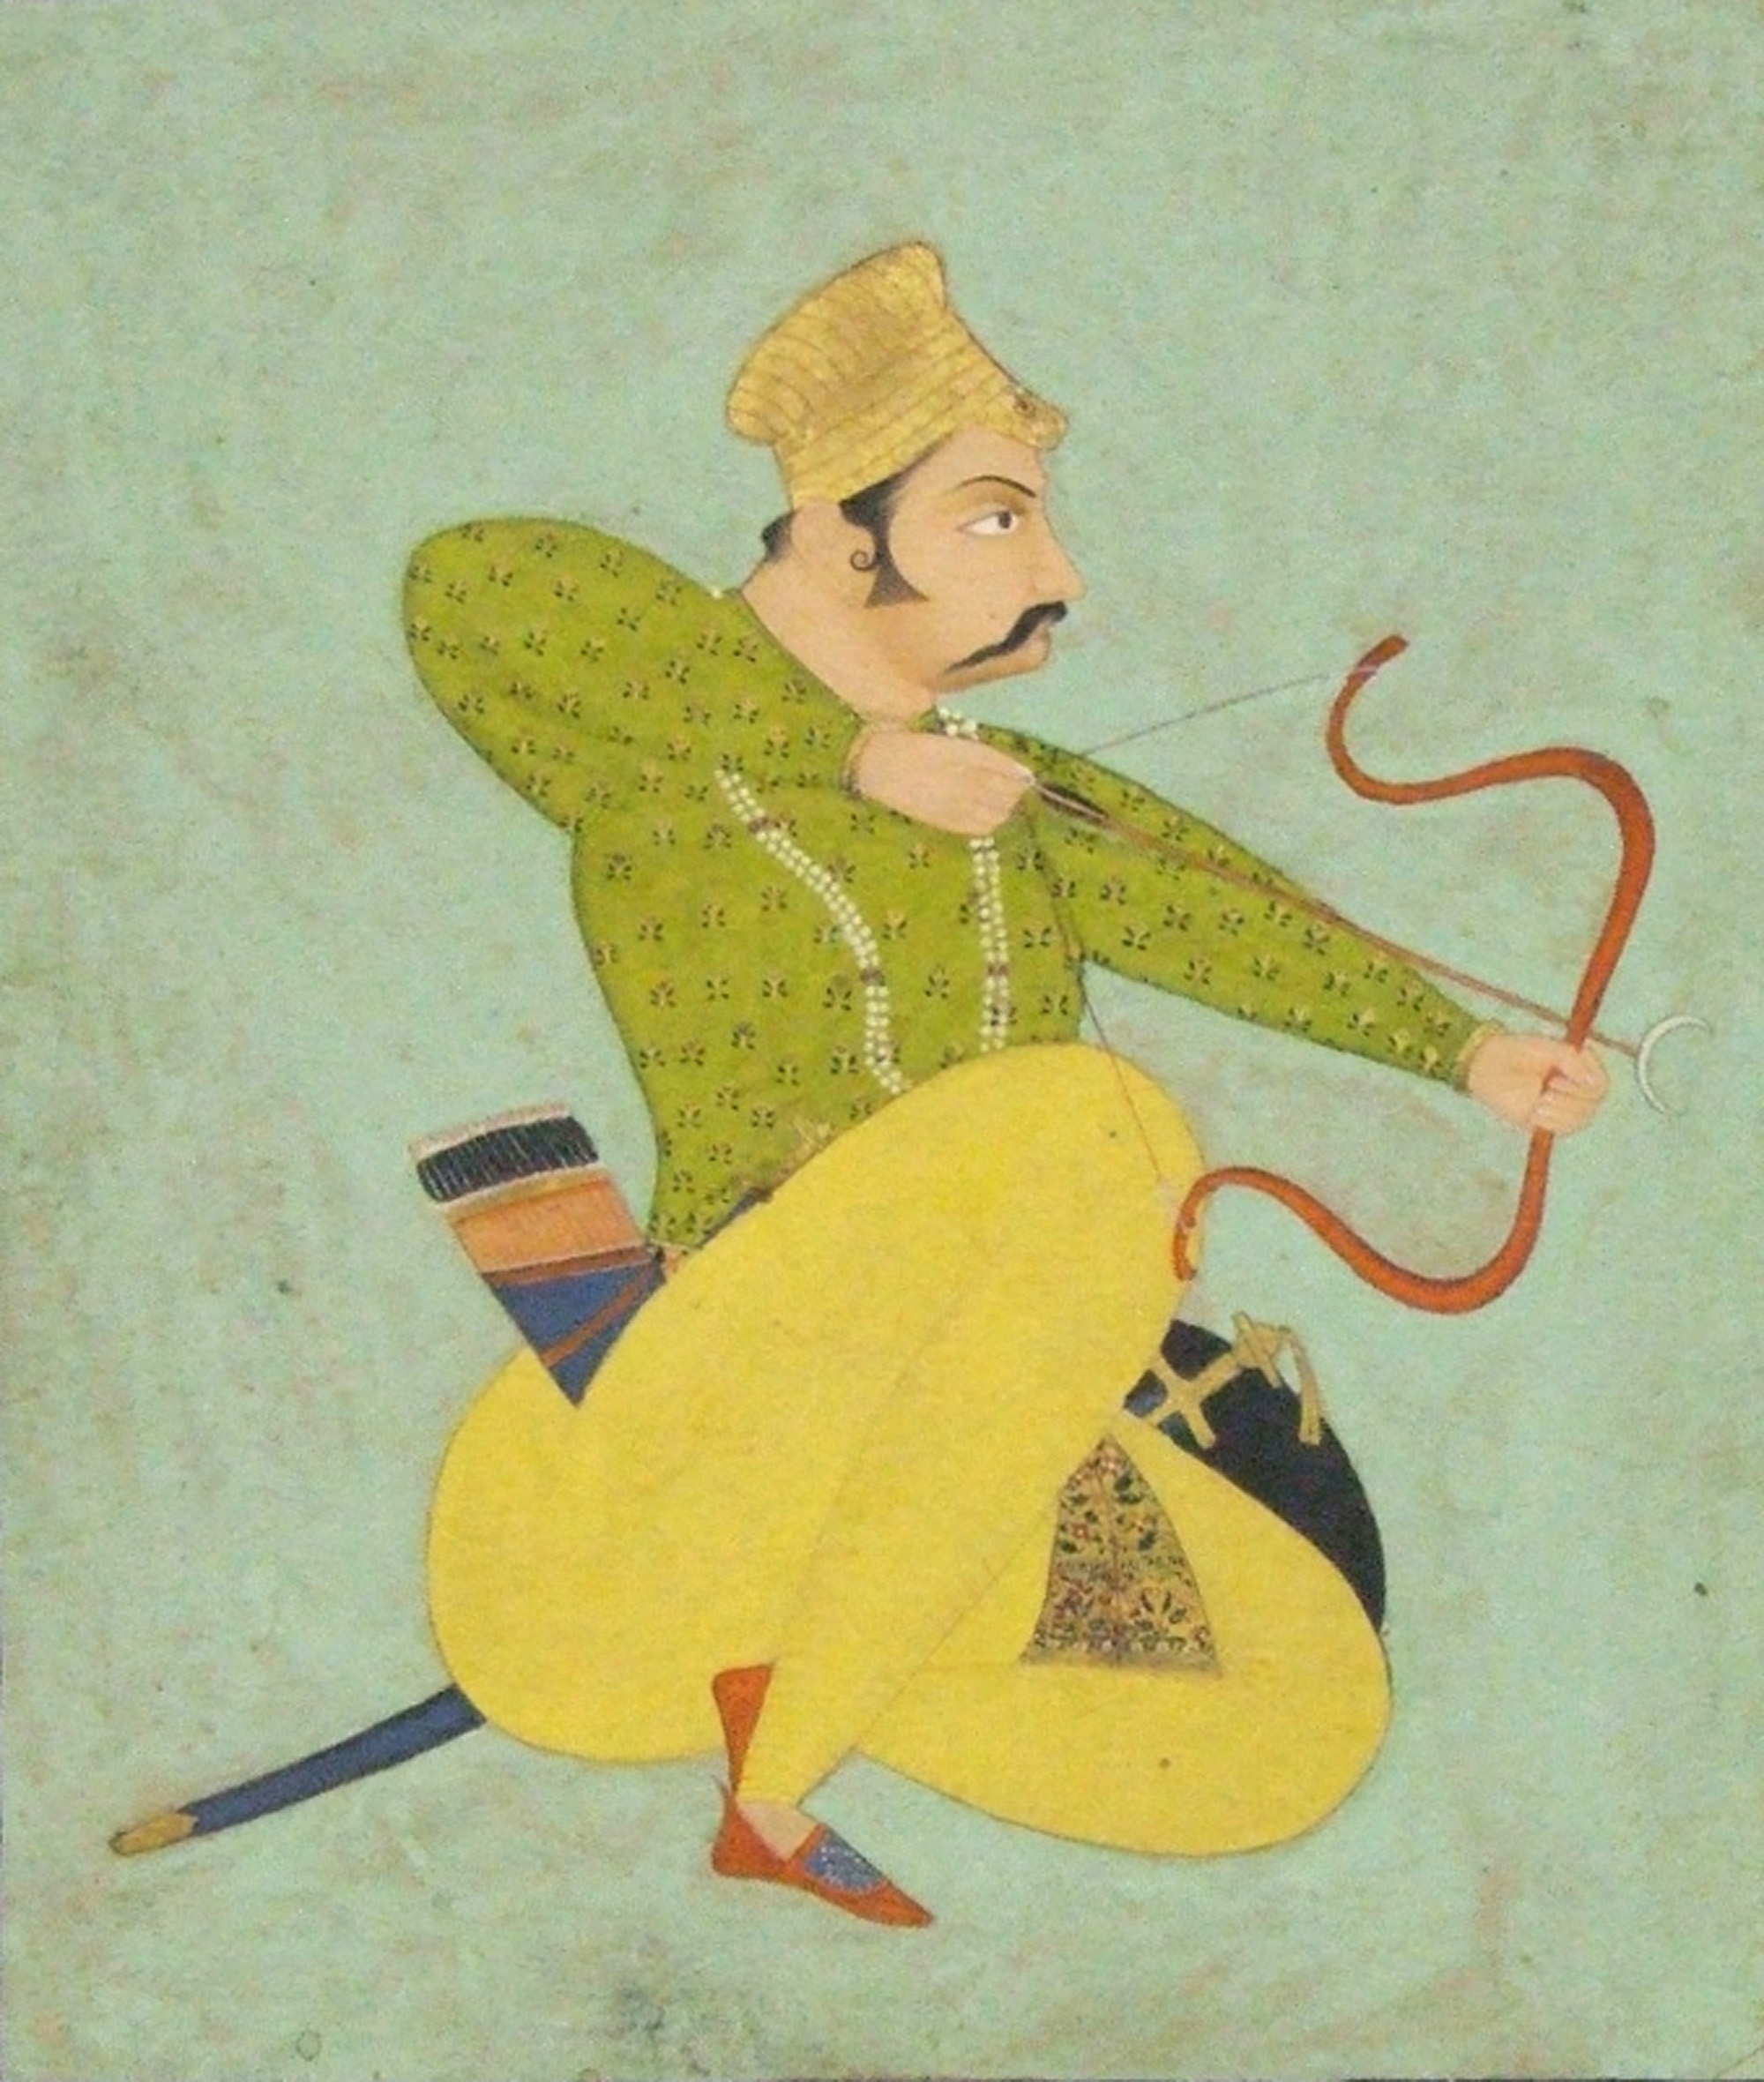 Artist unknown (Bundi School), Indian, late 18th century, <i>The Royal Archer</i>. Eli and Edythe Broad Art Museum, Michigan State University, Purchase.